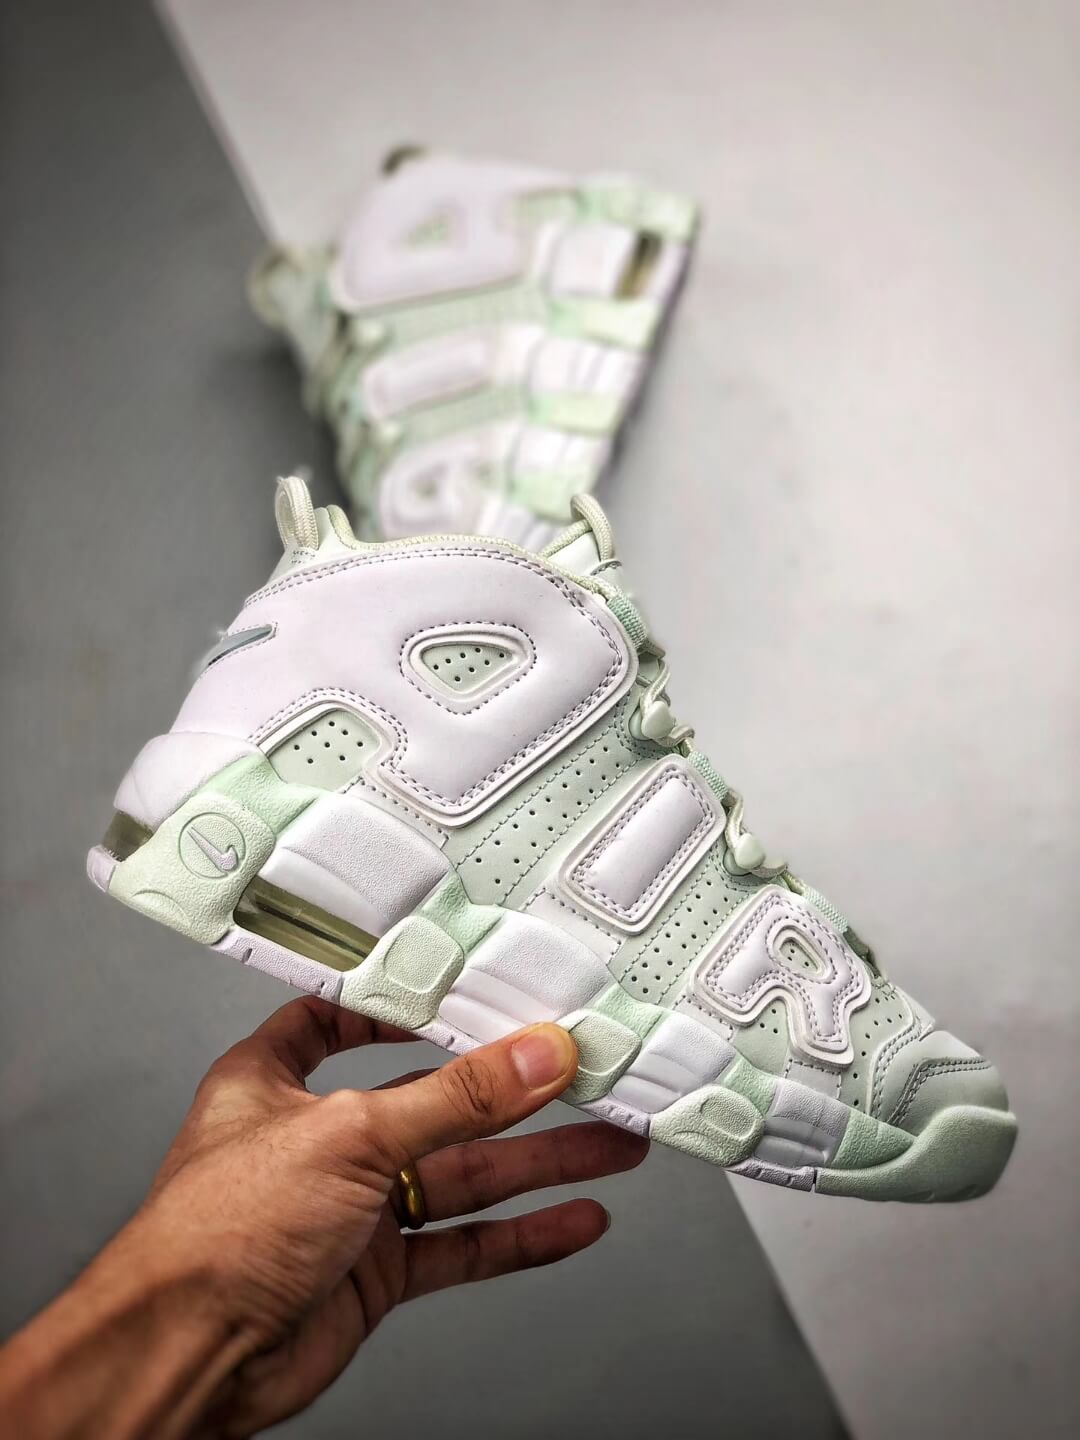 The Nike Wmns Air More Uptempo Barely Green Basketball Shoes Womens Athletic Rep Sneakers 02